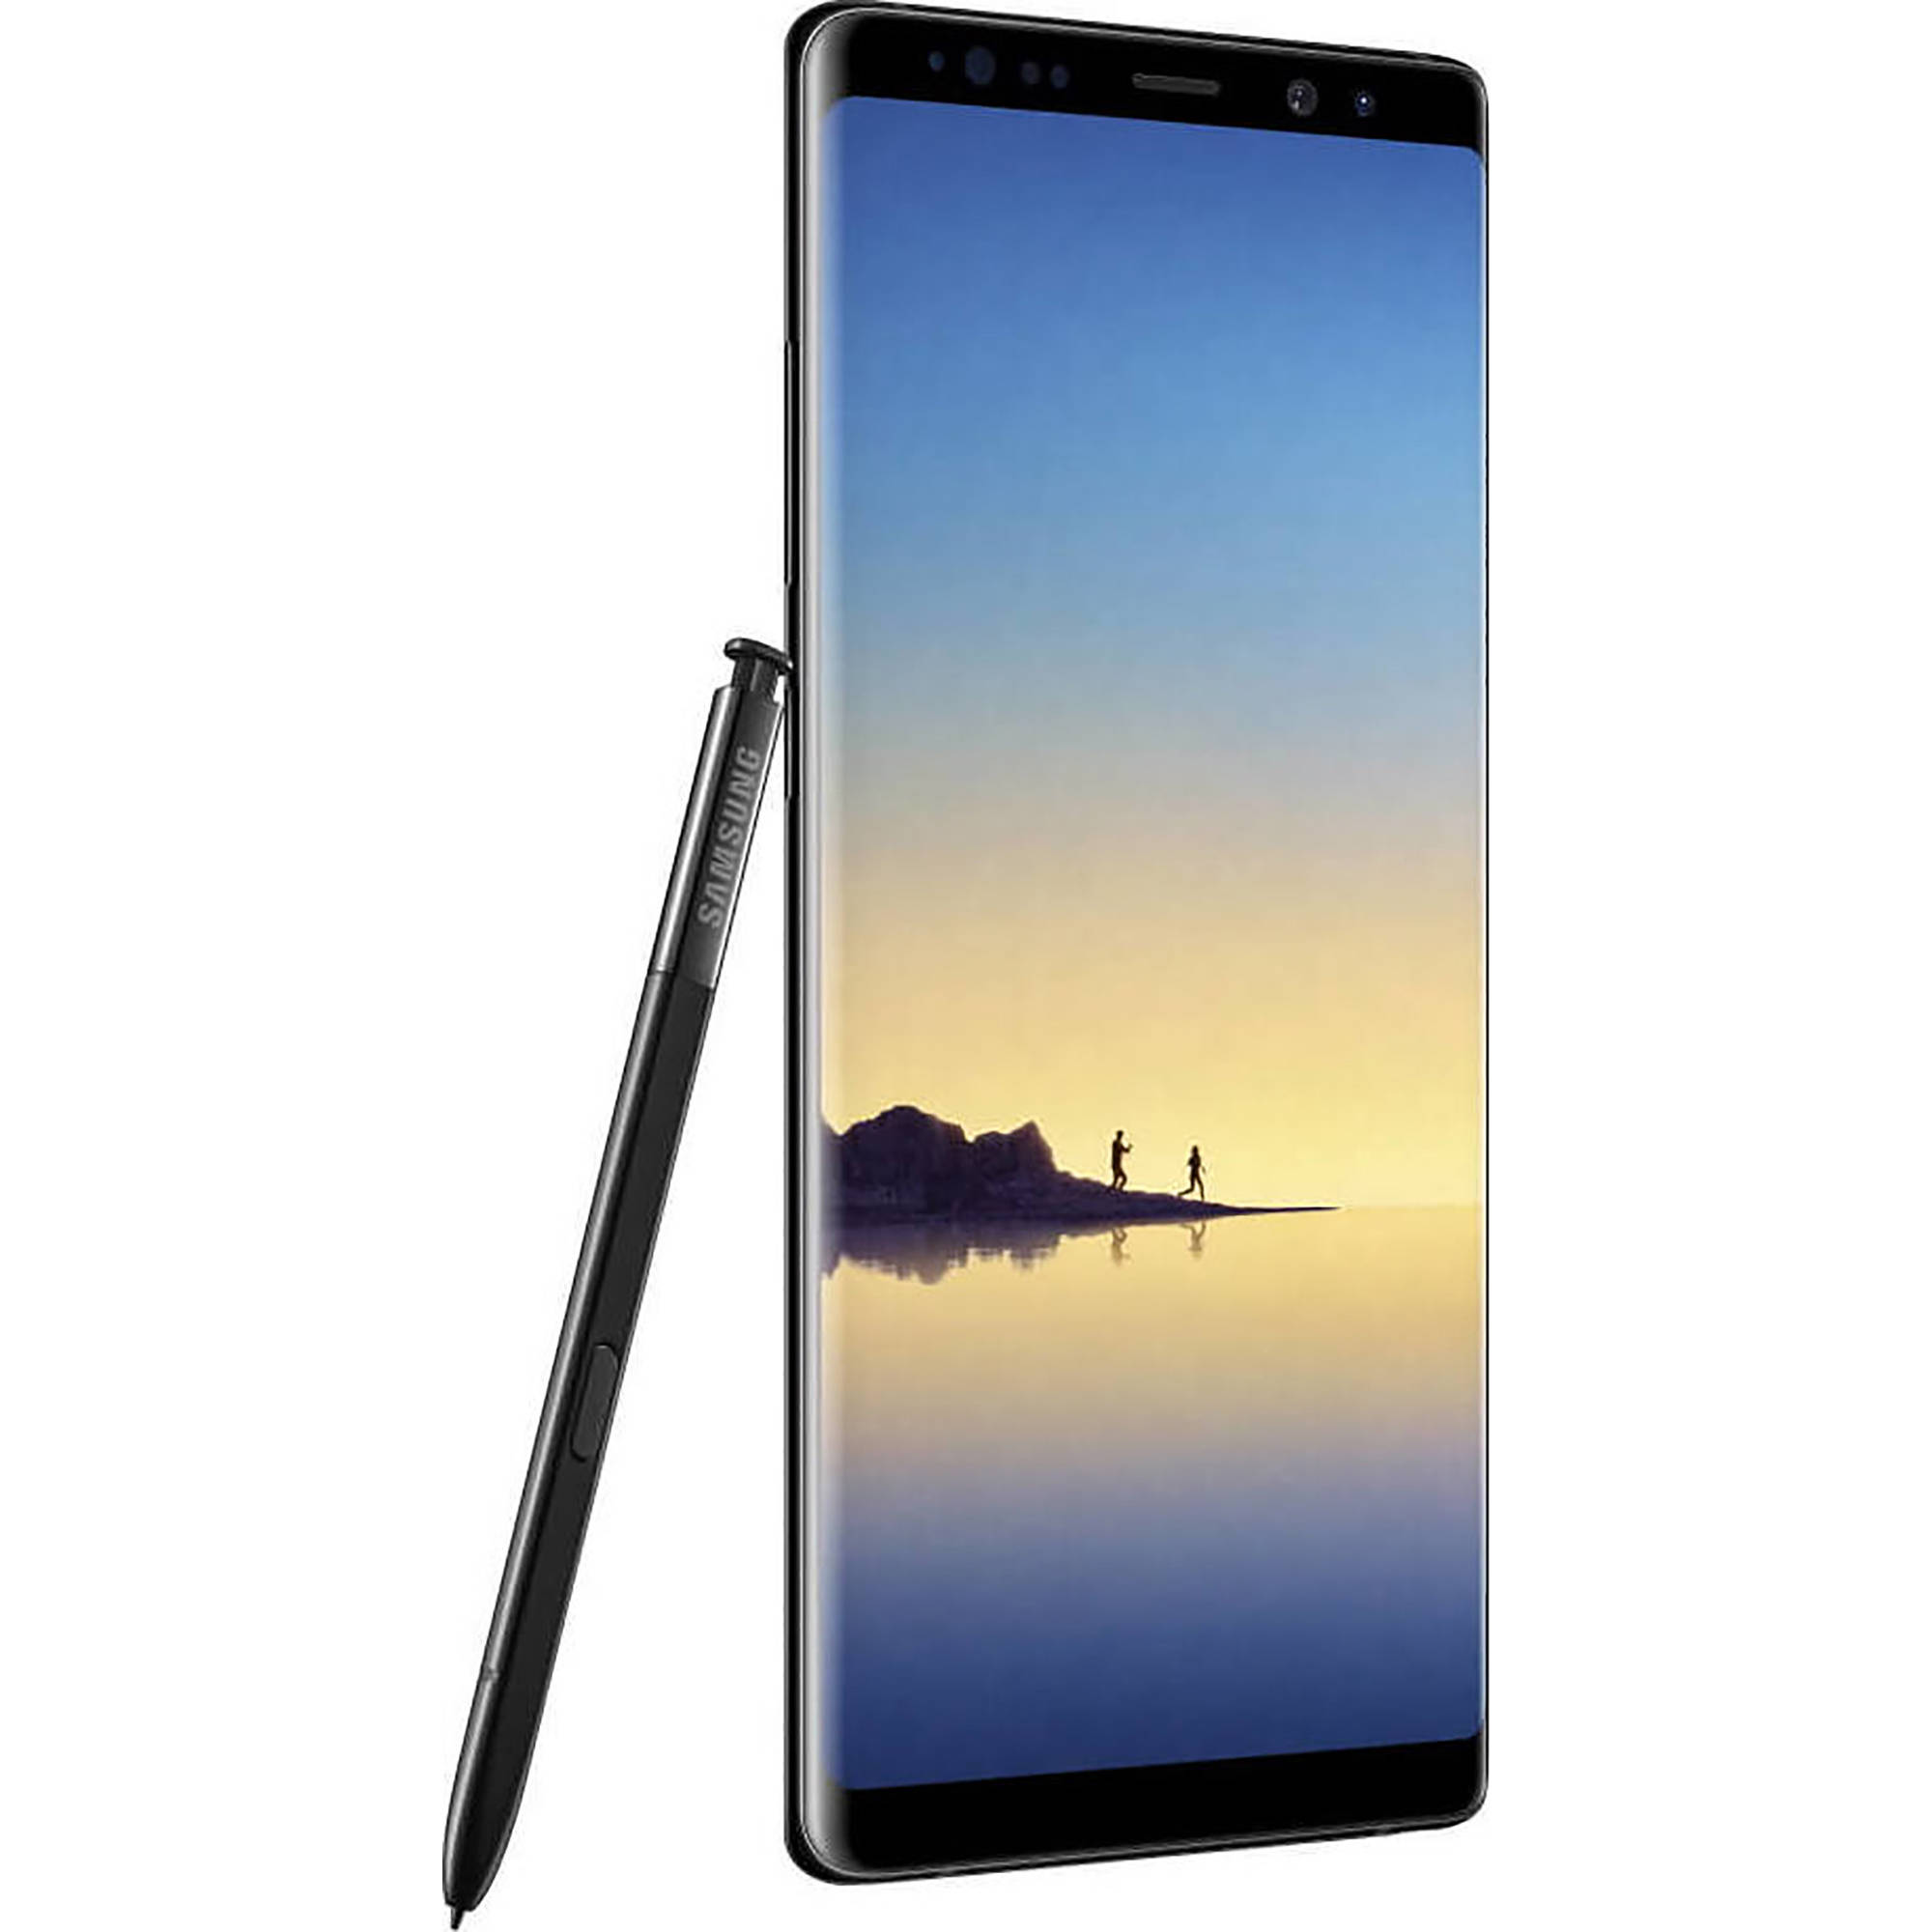 Samsung Smartphone Galaxy J7 2017 Dore 1665395 fr 626 moreover Morning Stroll 625344434 together with 452119 test De La Samsung Galaxy Book Windows 10 Et Lexpertise Coreenne Mariage Reussi in addition Tecno Phantom 8 Plus Rumours as well Dell Latitude E6420 ATG 56192 0. on samsung galaxy core